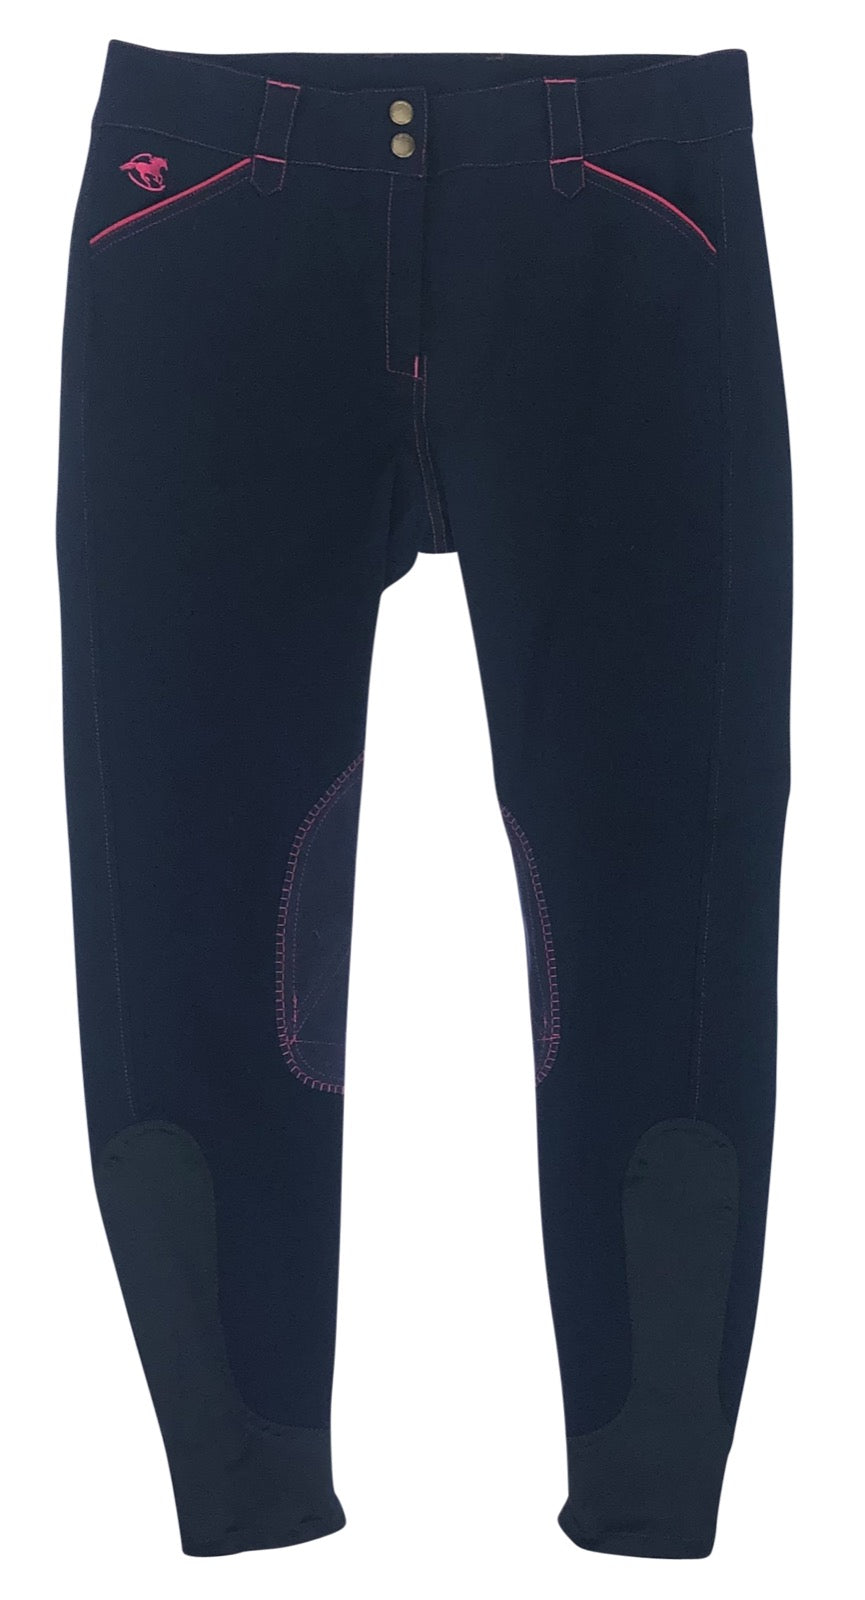 front view of SmartPak Piper Knee Patch Breeches in Navy/Hot Pink